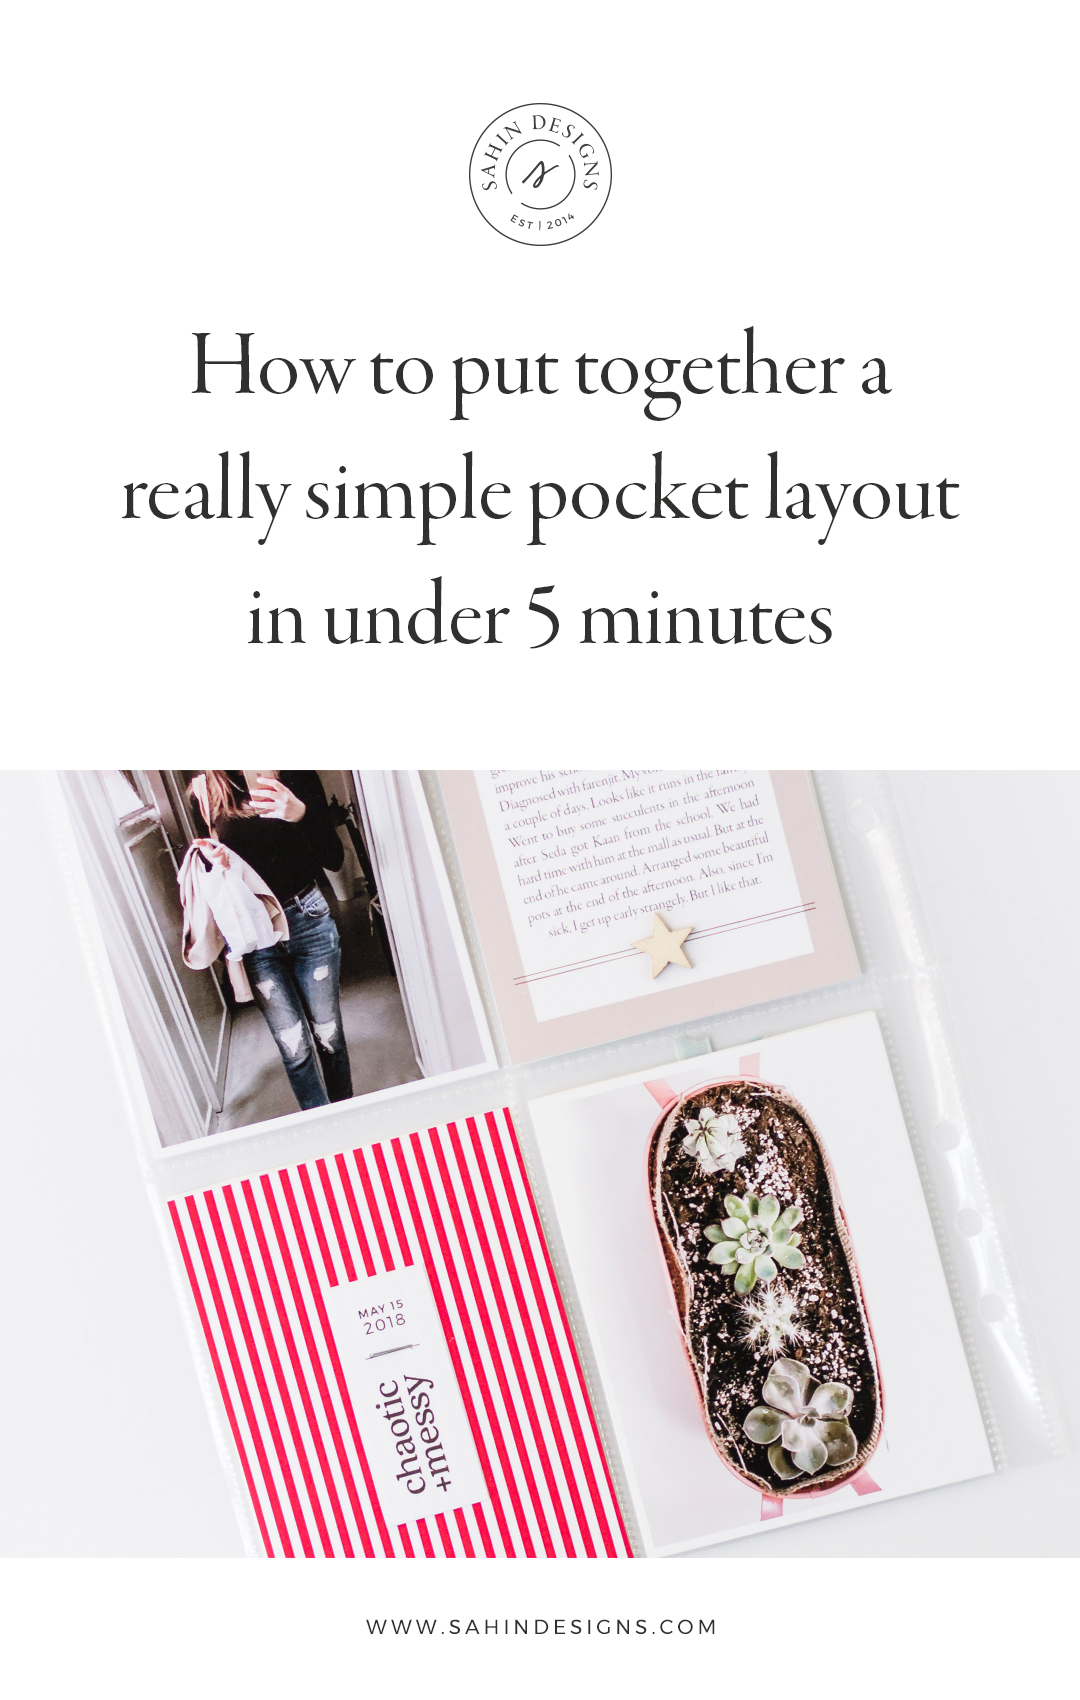 How to put together a really simple pocket layout in under 5 minutes - Sahin Designs